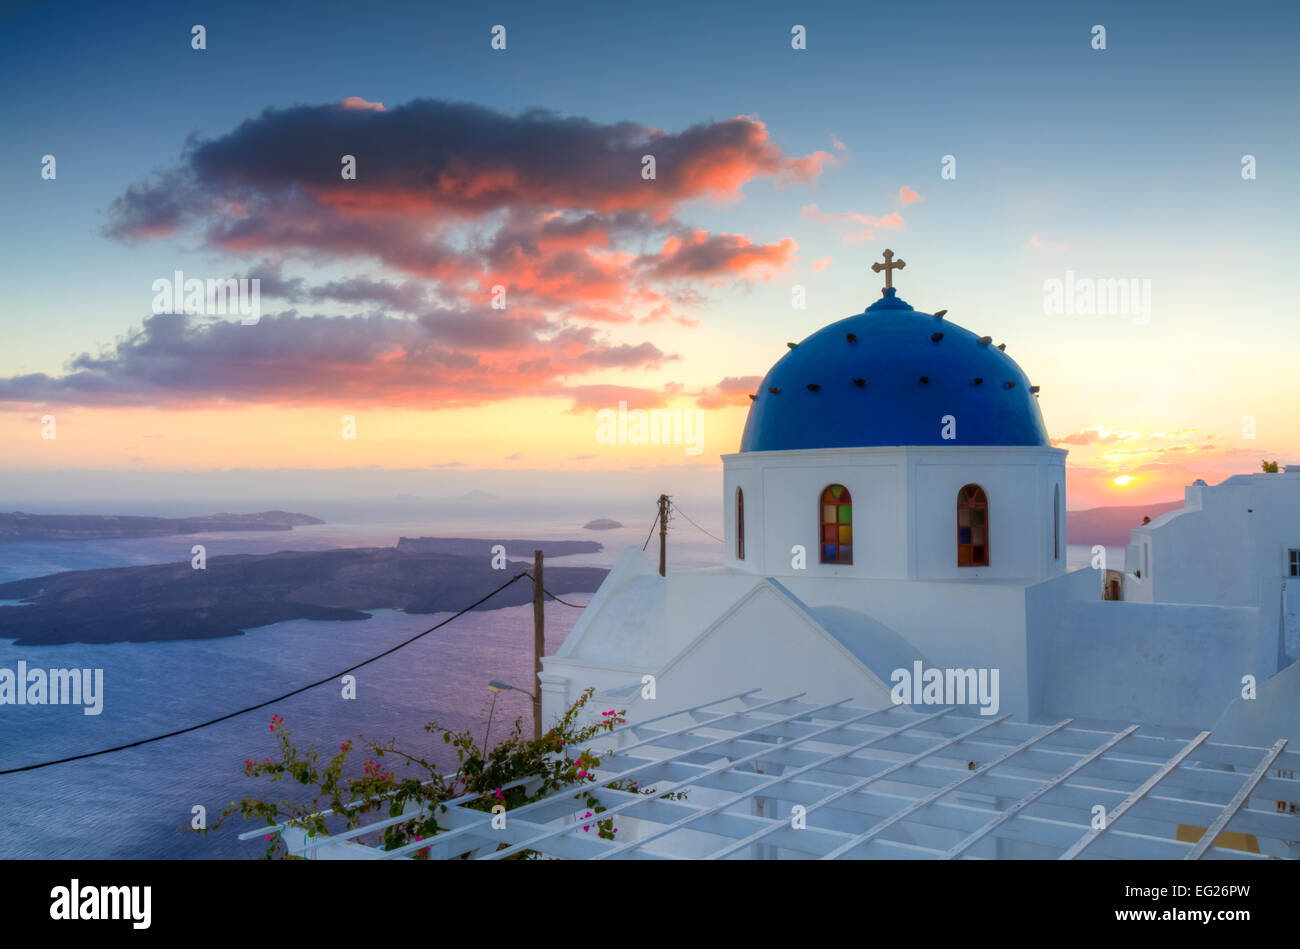 Sunset over Imerovigli, Santorini, Cyclades, Greece Stock Photo